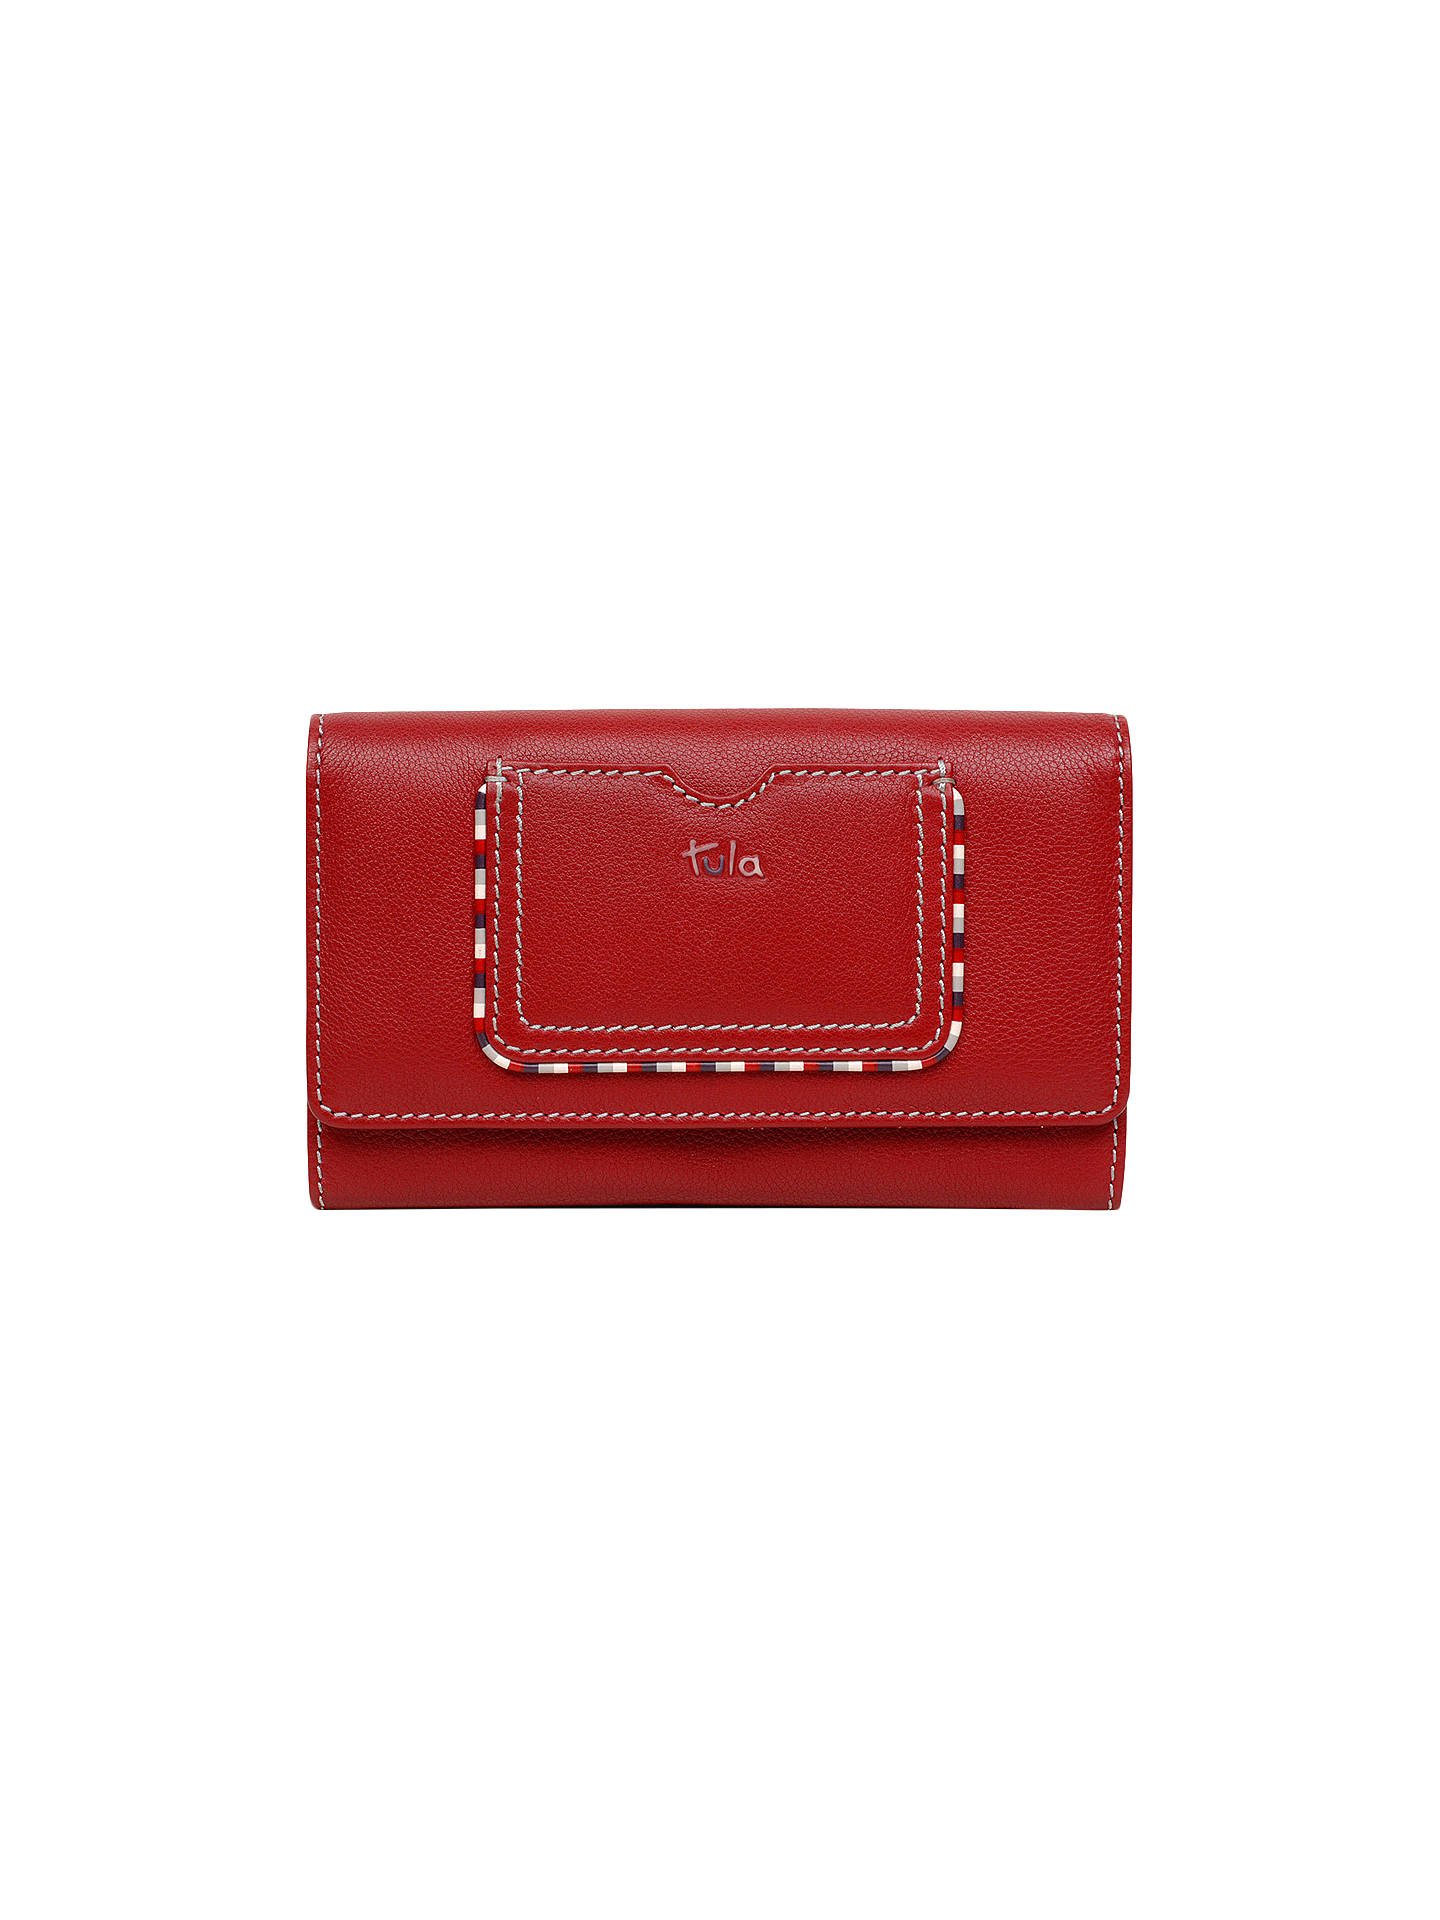 1d90da27ec3 BuyTula Mallory Leather Large Flapover Matinee Purse, Scarlet Online at  johnlewis.com ...